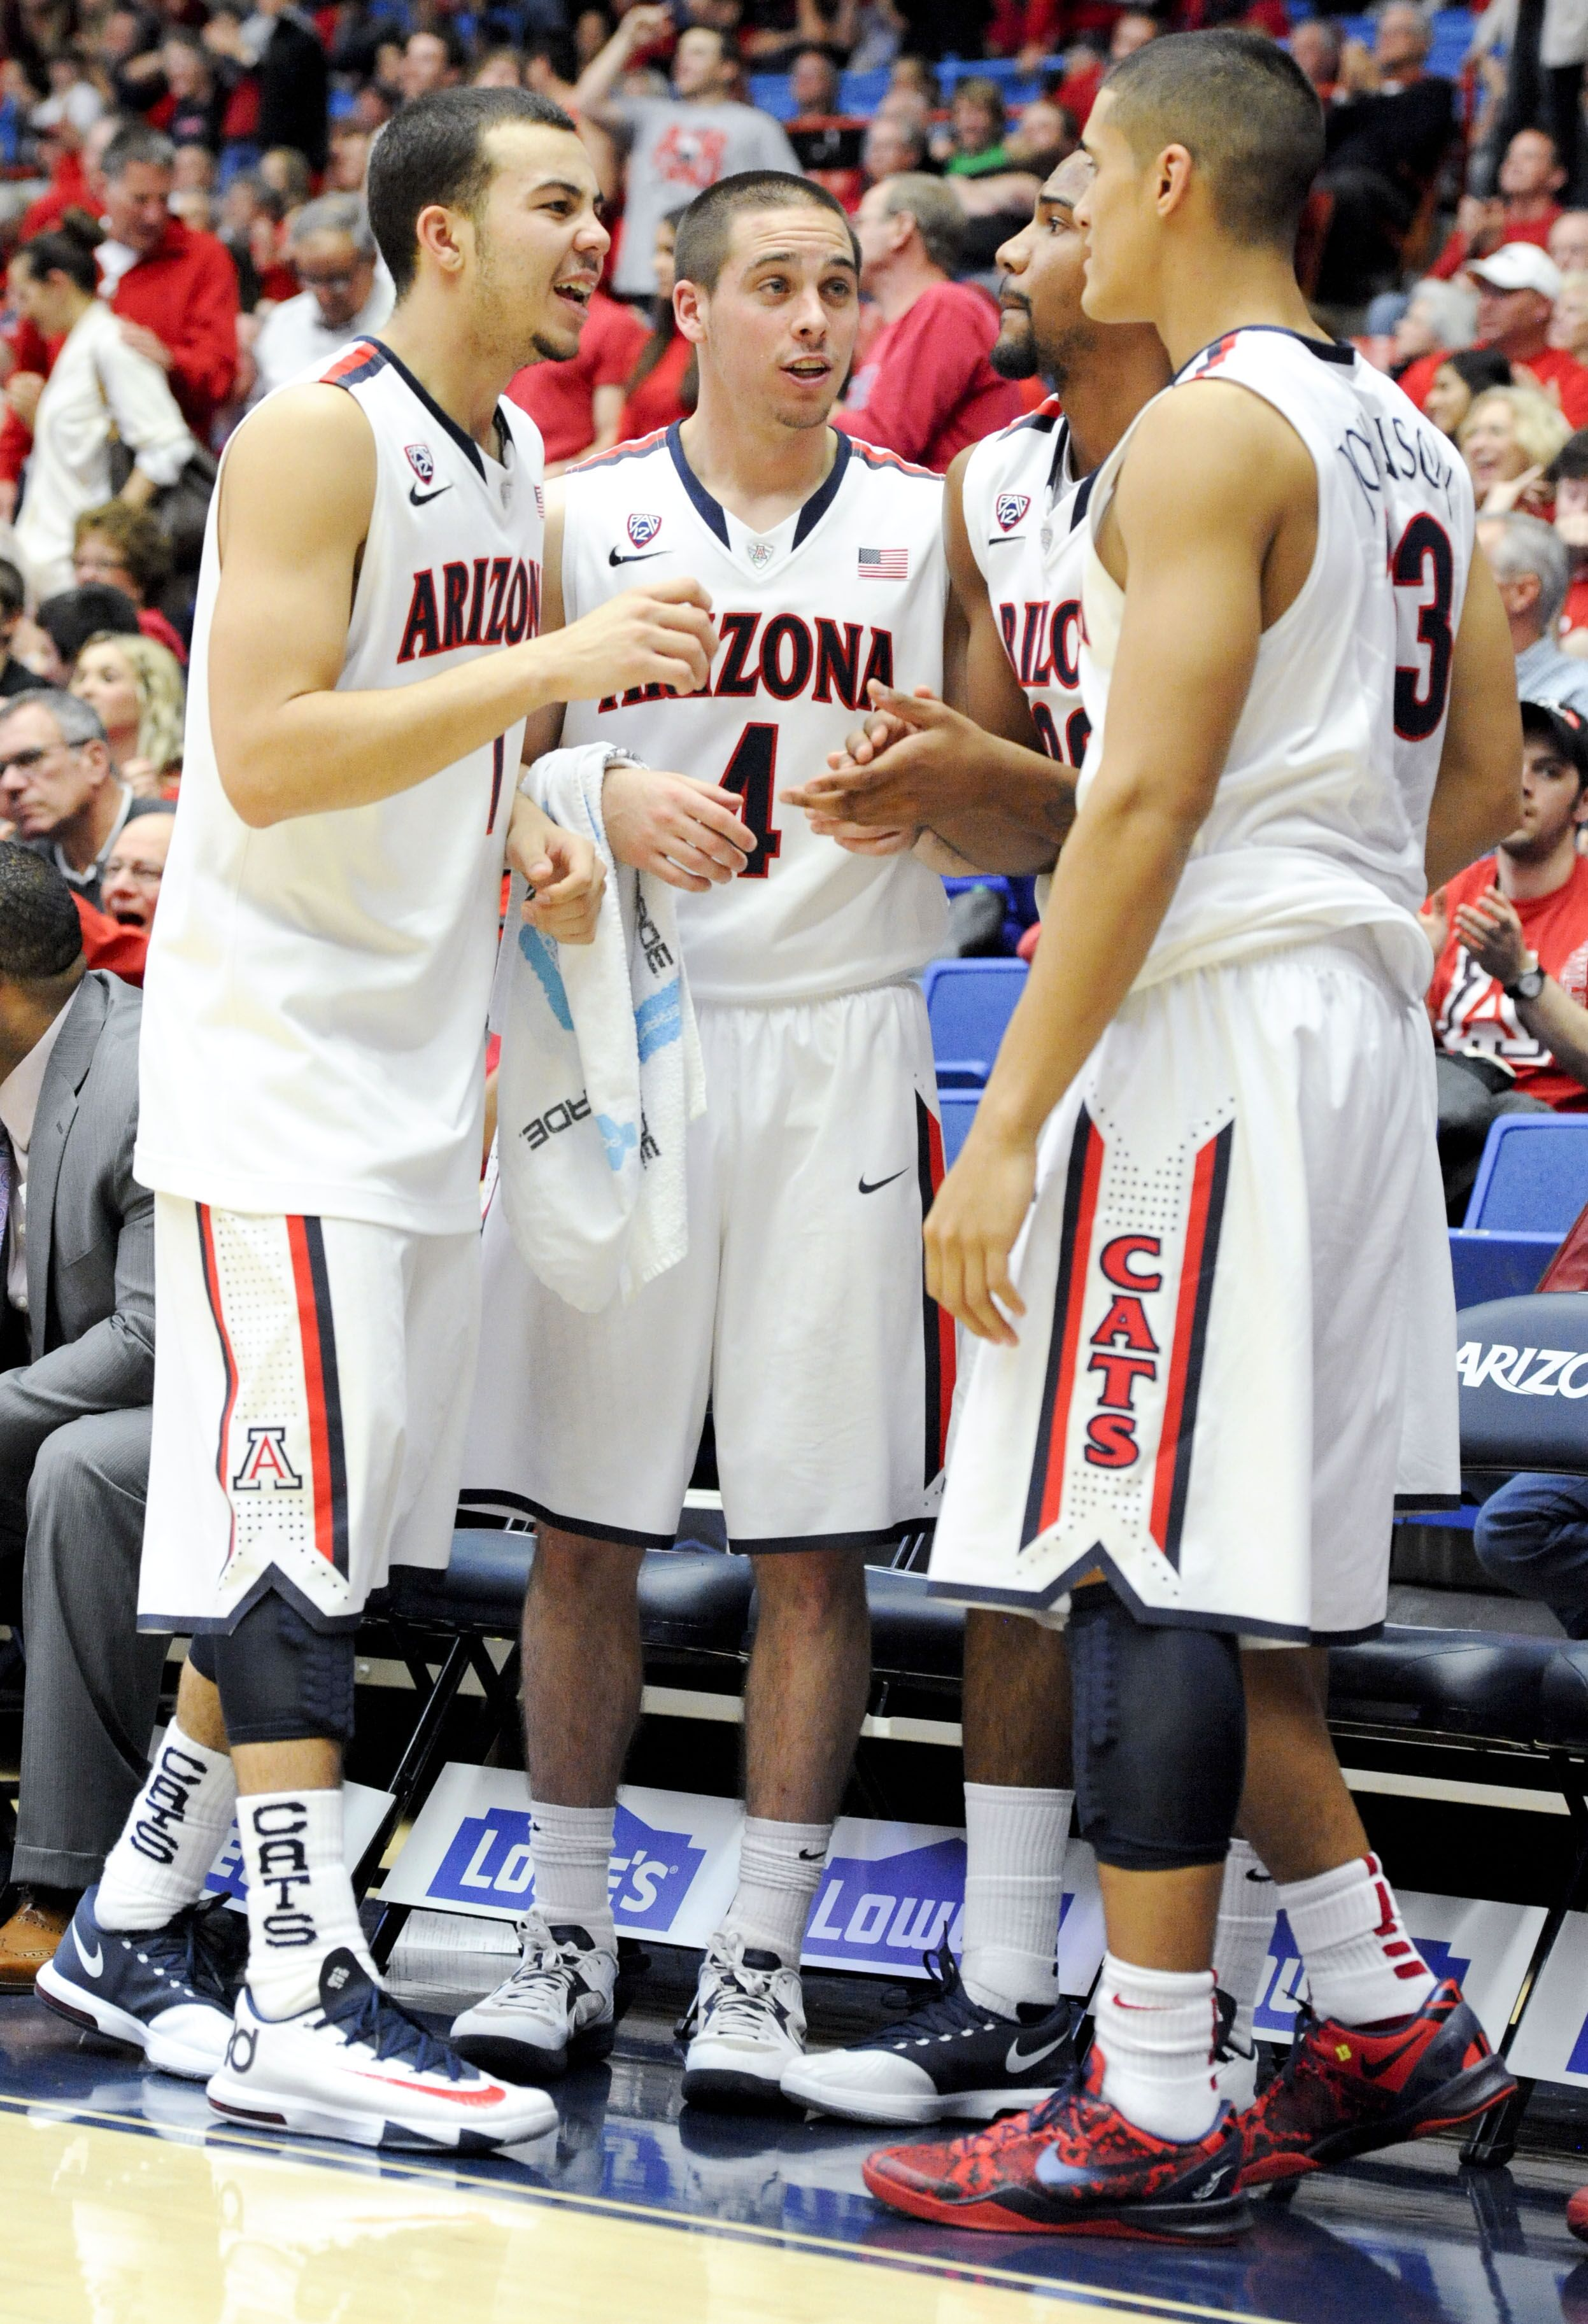 Arizona Basketball: Jordin Mayes was on fire playing in ...